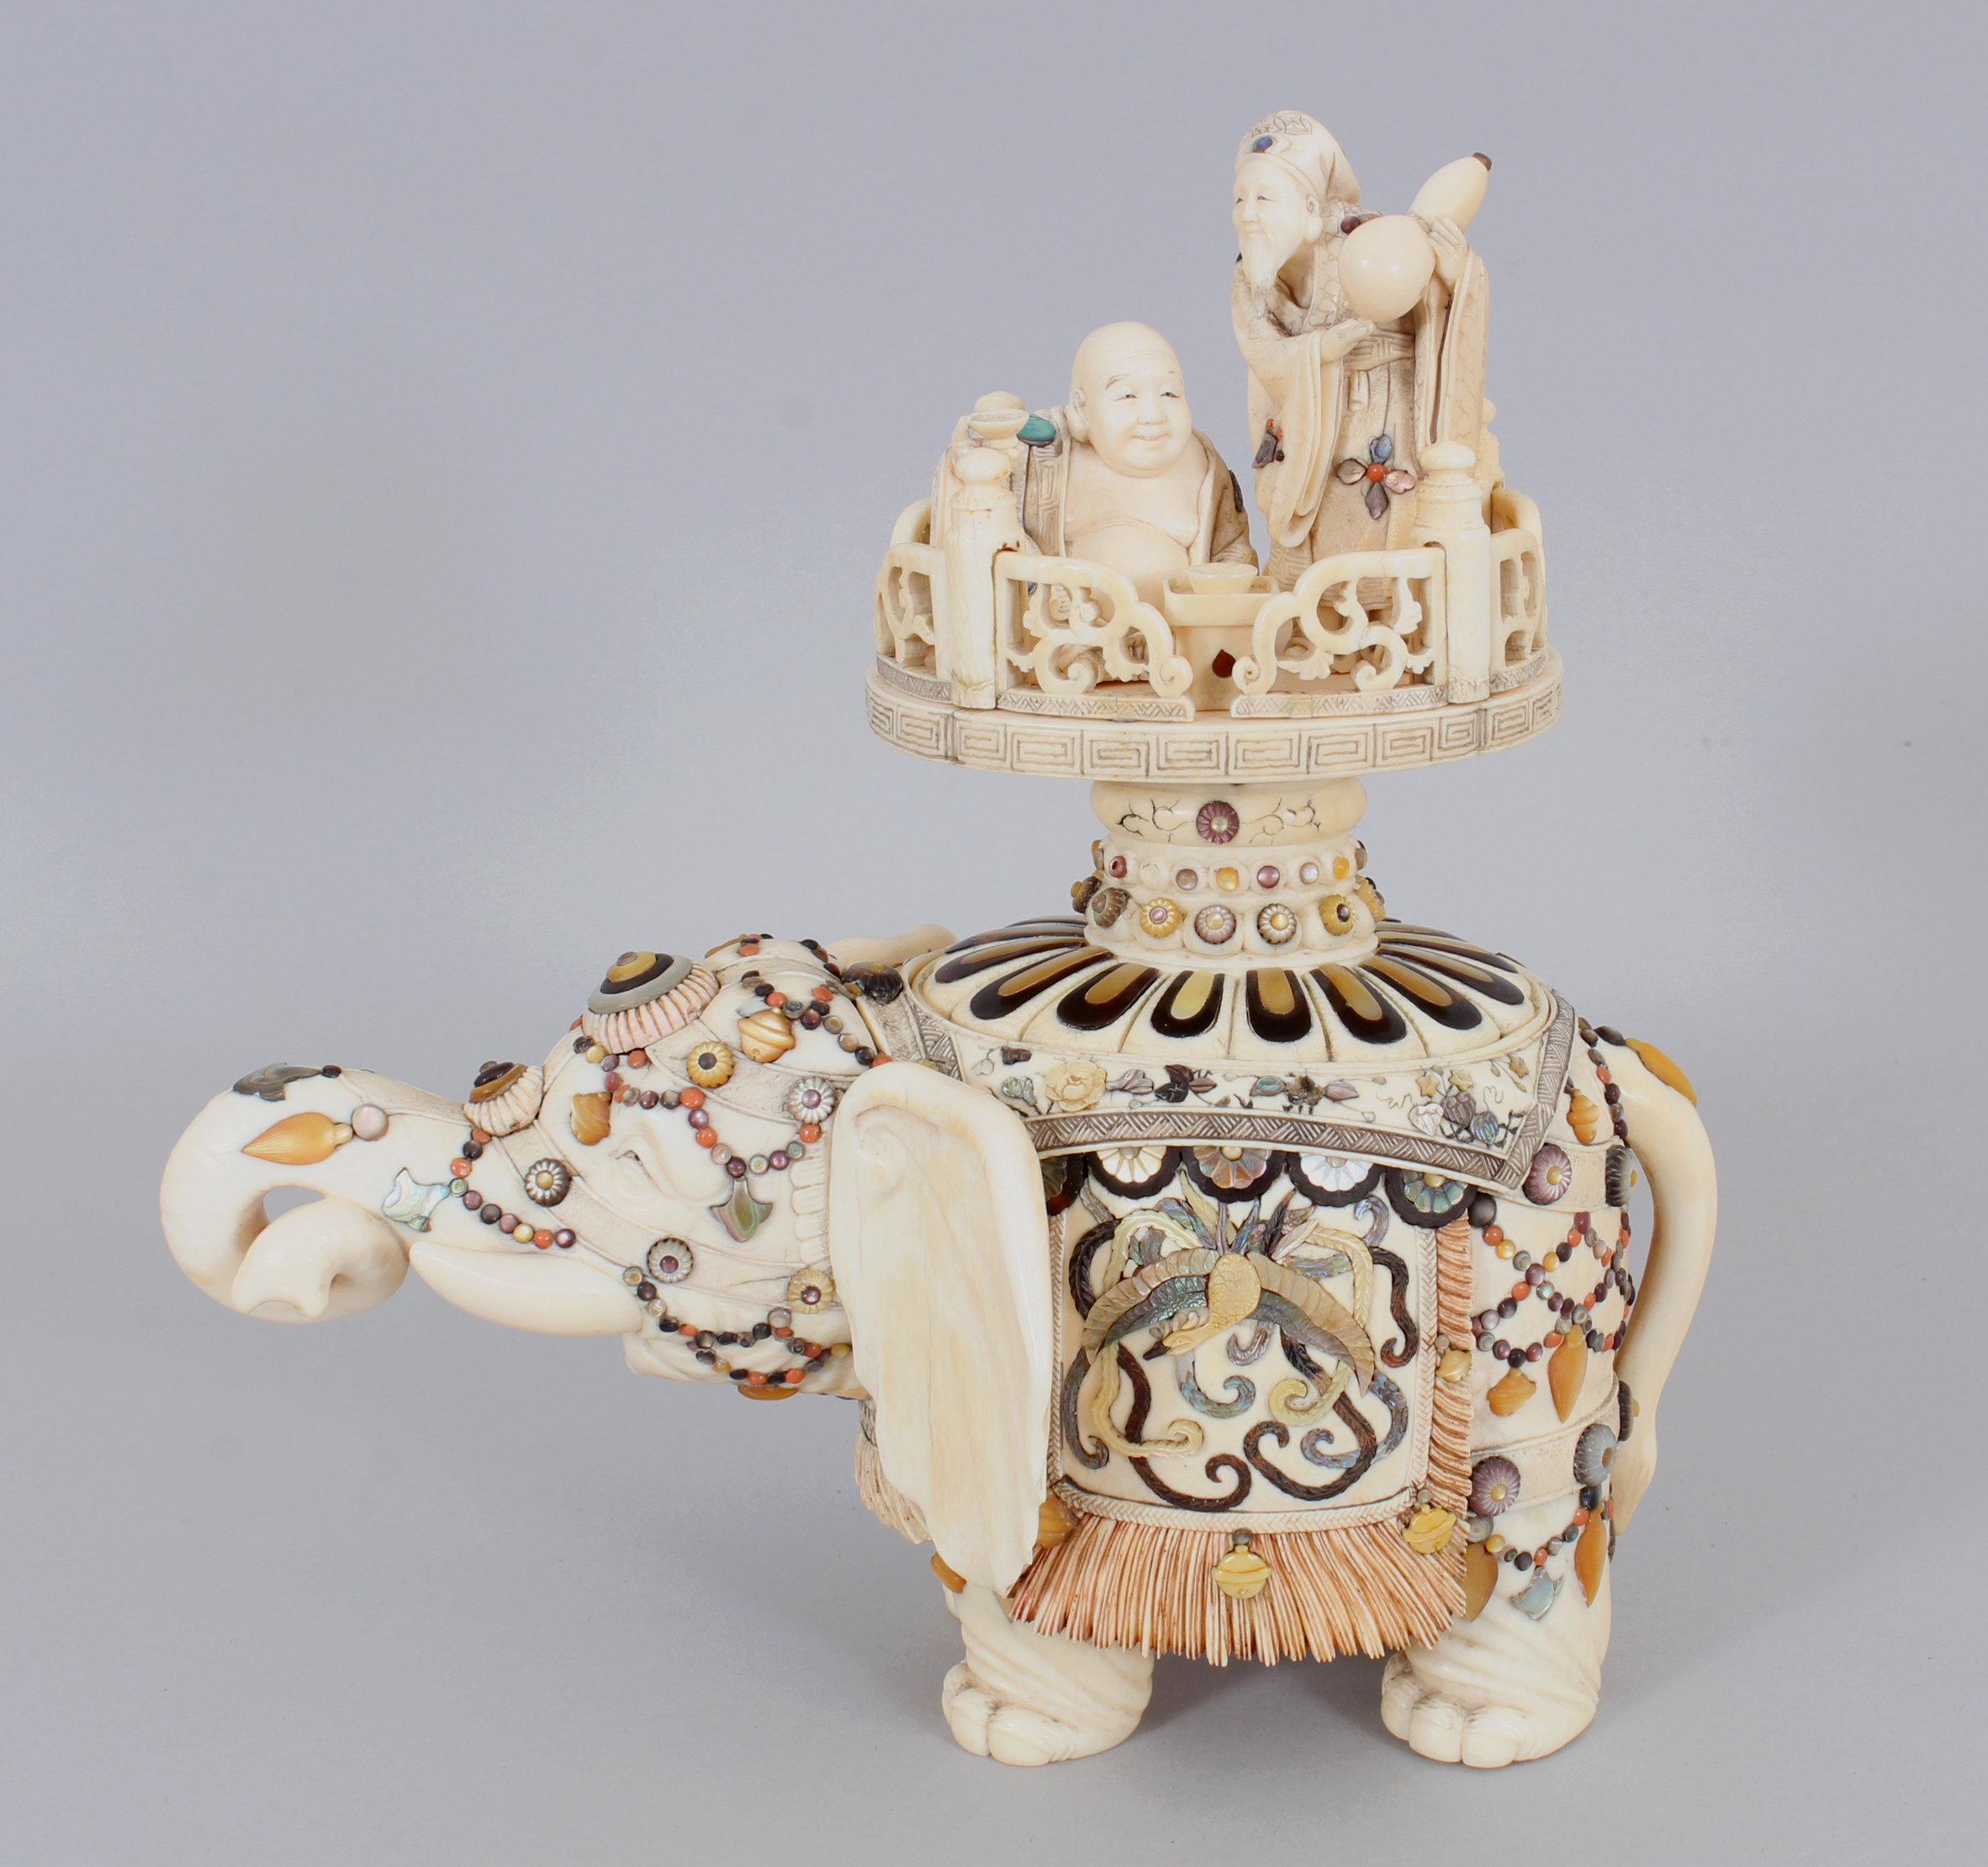 A fine quality signed Japanese Meiji period Shibayama and Ivory model of an elephant and cover/Auctioneers and Valuers